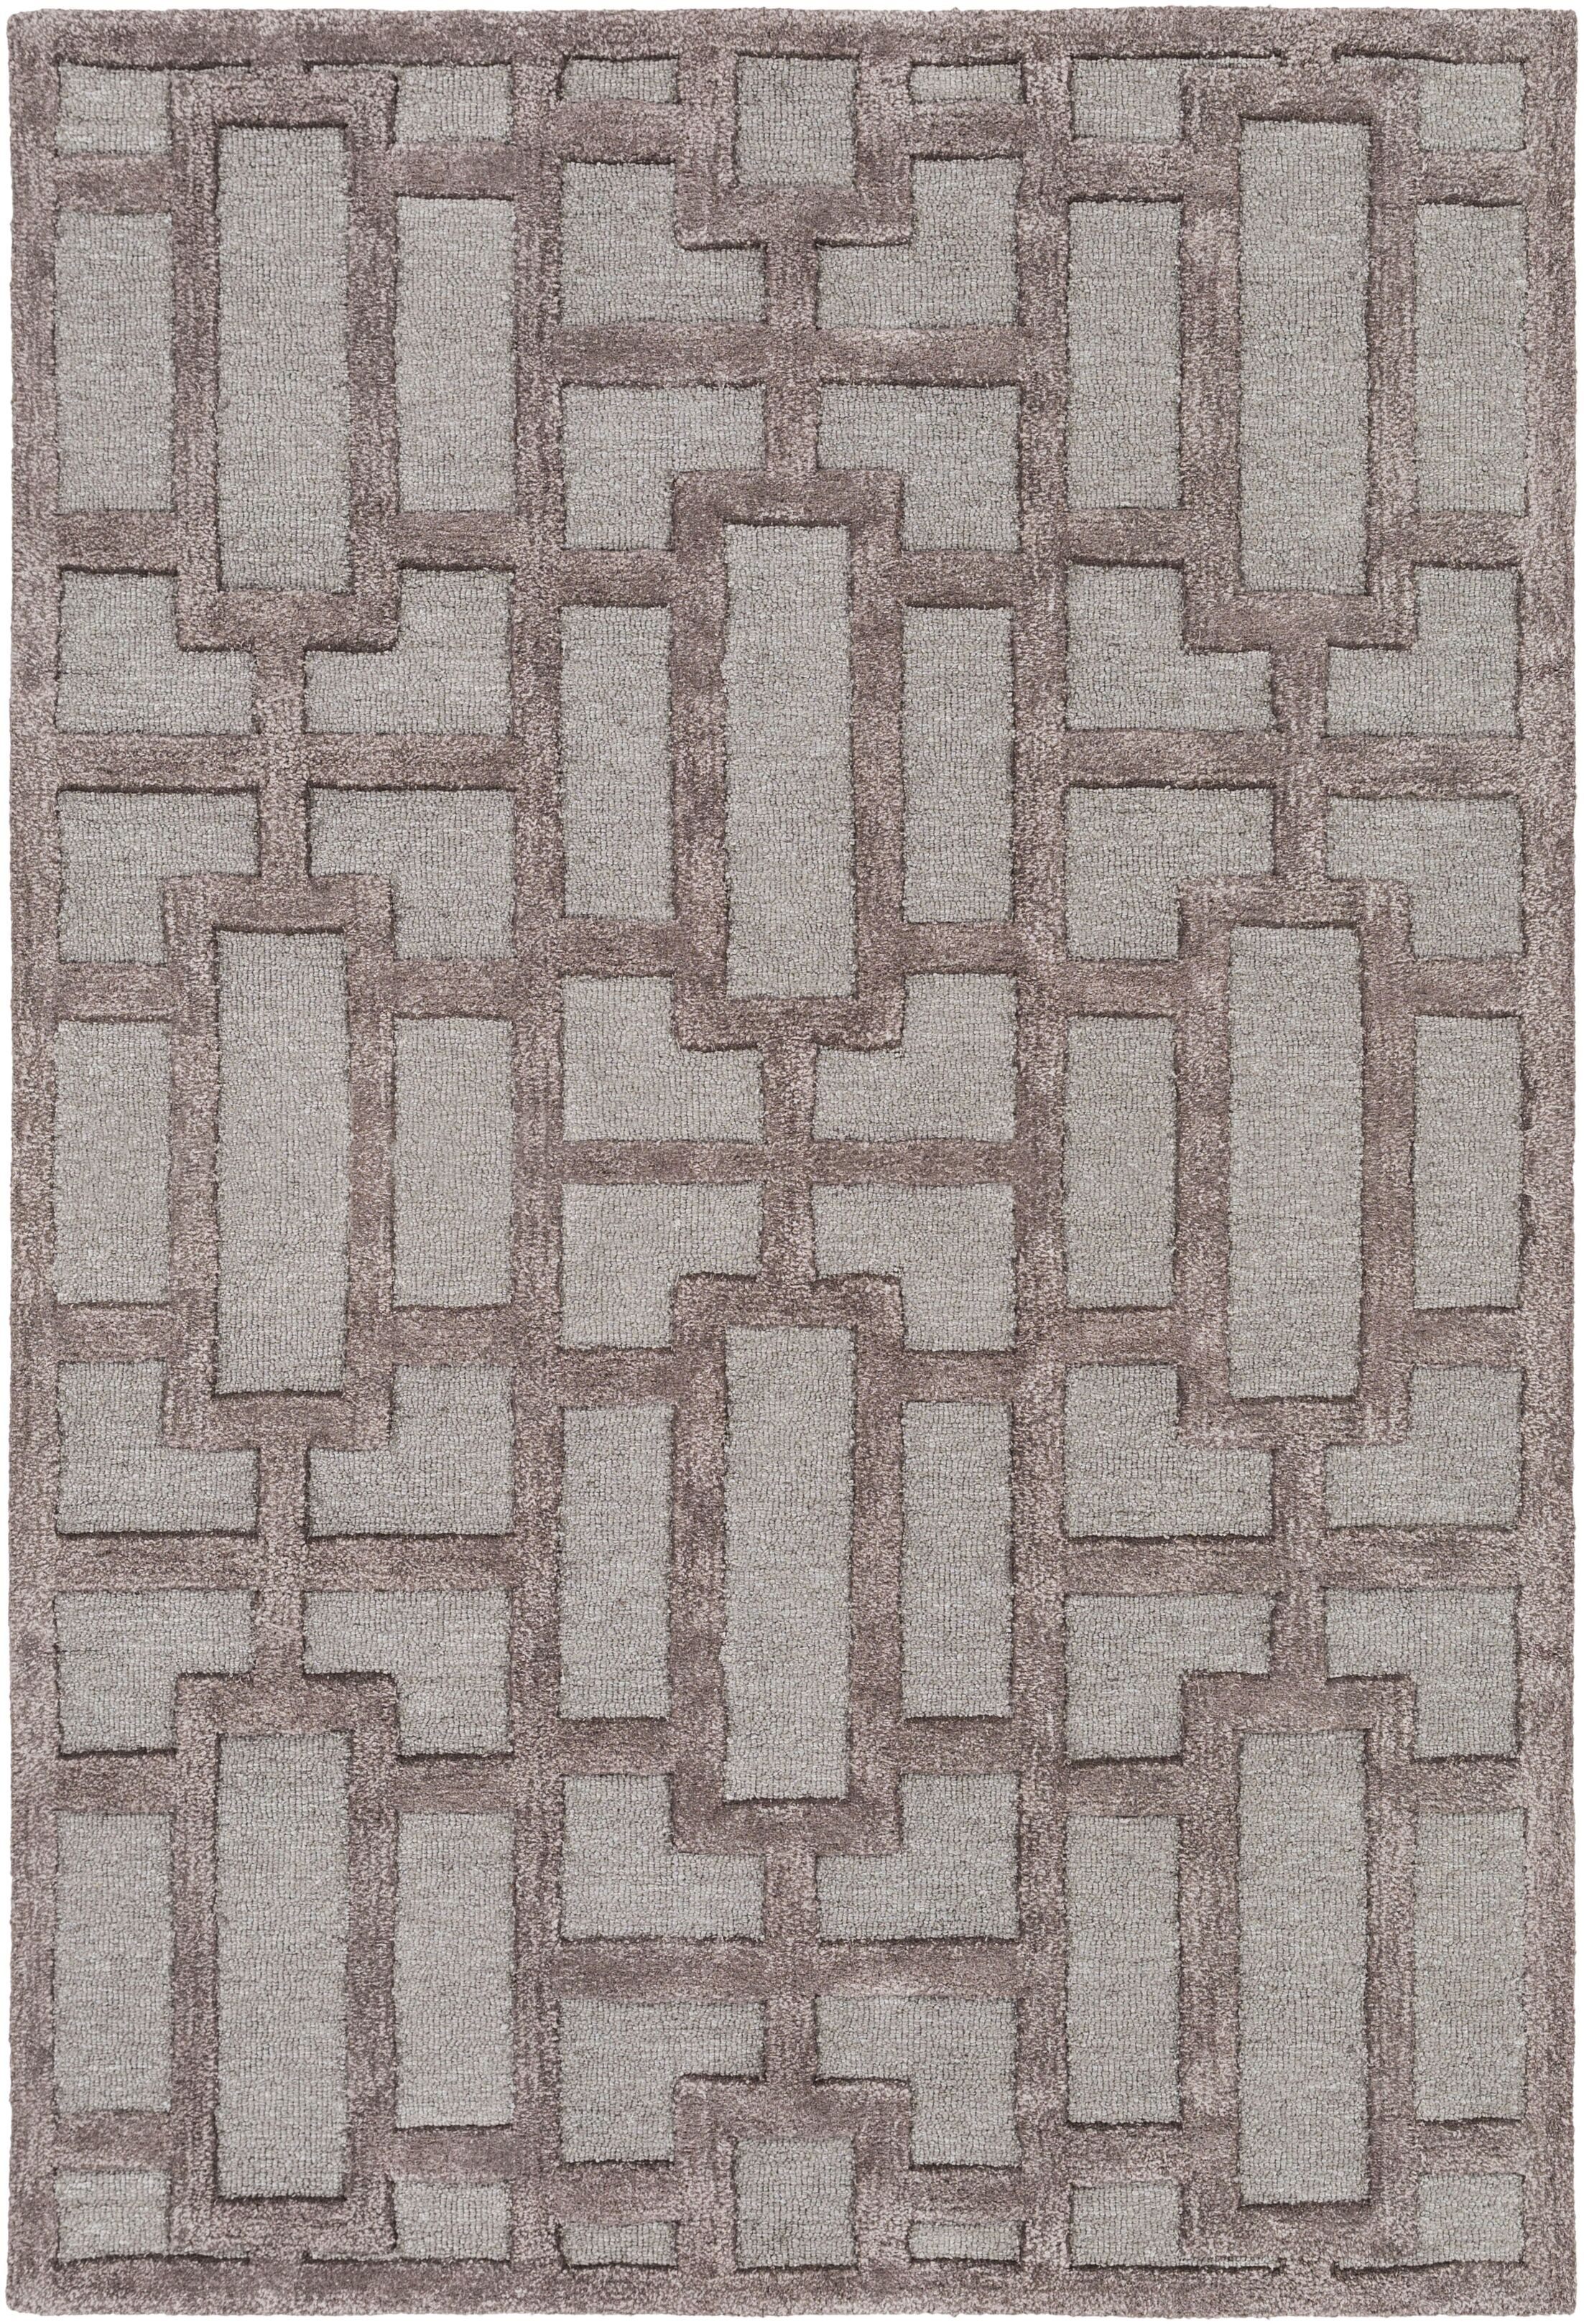 Perpetua Hand-Tufted Light Blue/Gray Area Rug Rug Size: Rectangle 5' x 7'6